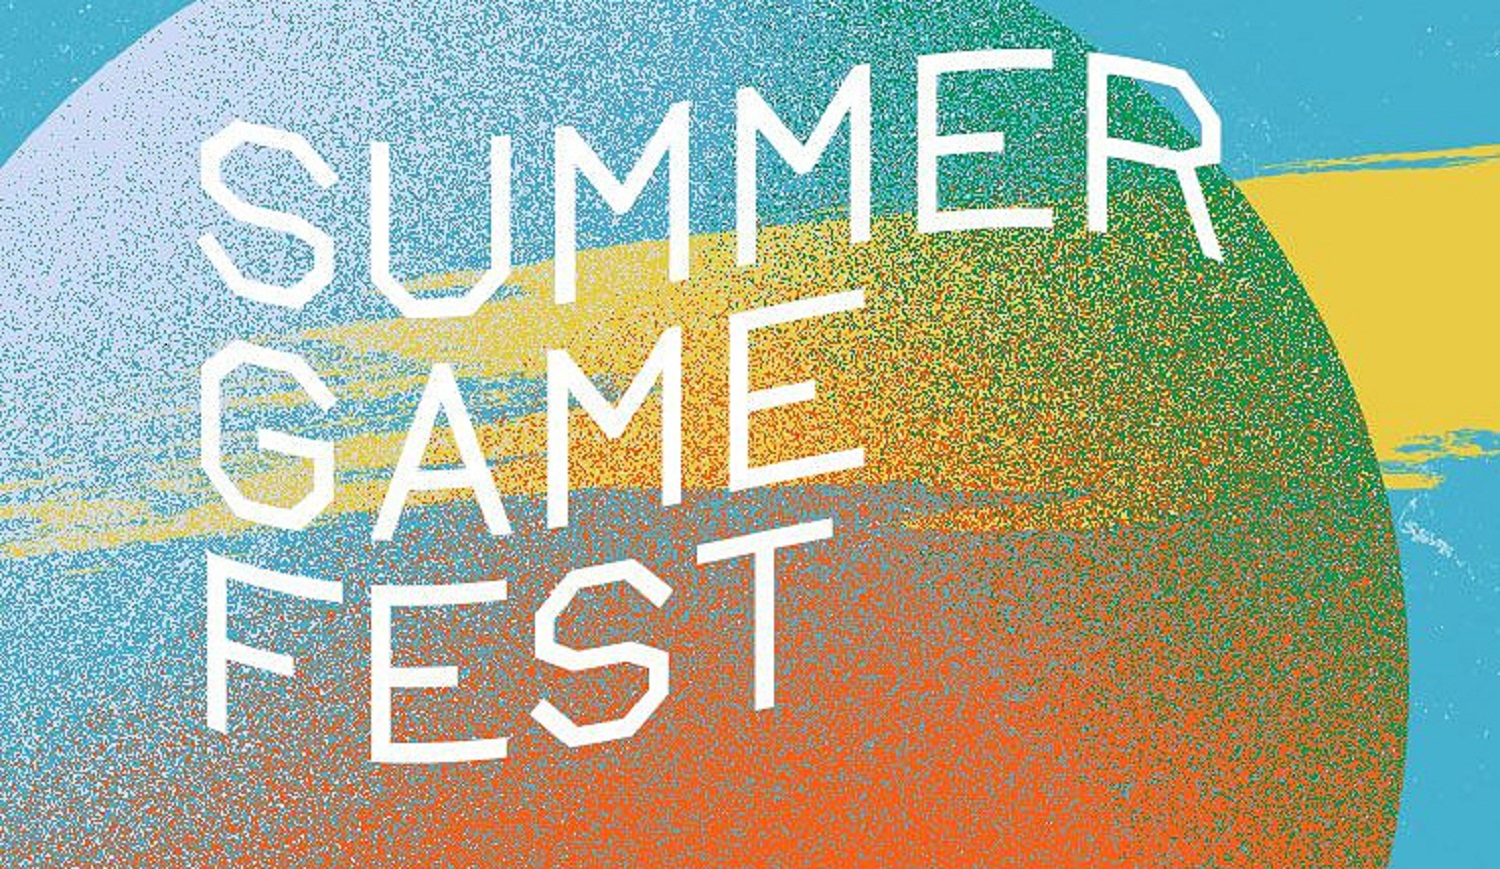 Summer Game Fest: 'It Will Be Like A Hub Or TV Guide Where You Can Watch All The Events From The Website', Geoff Keighley